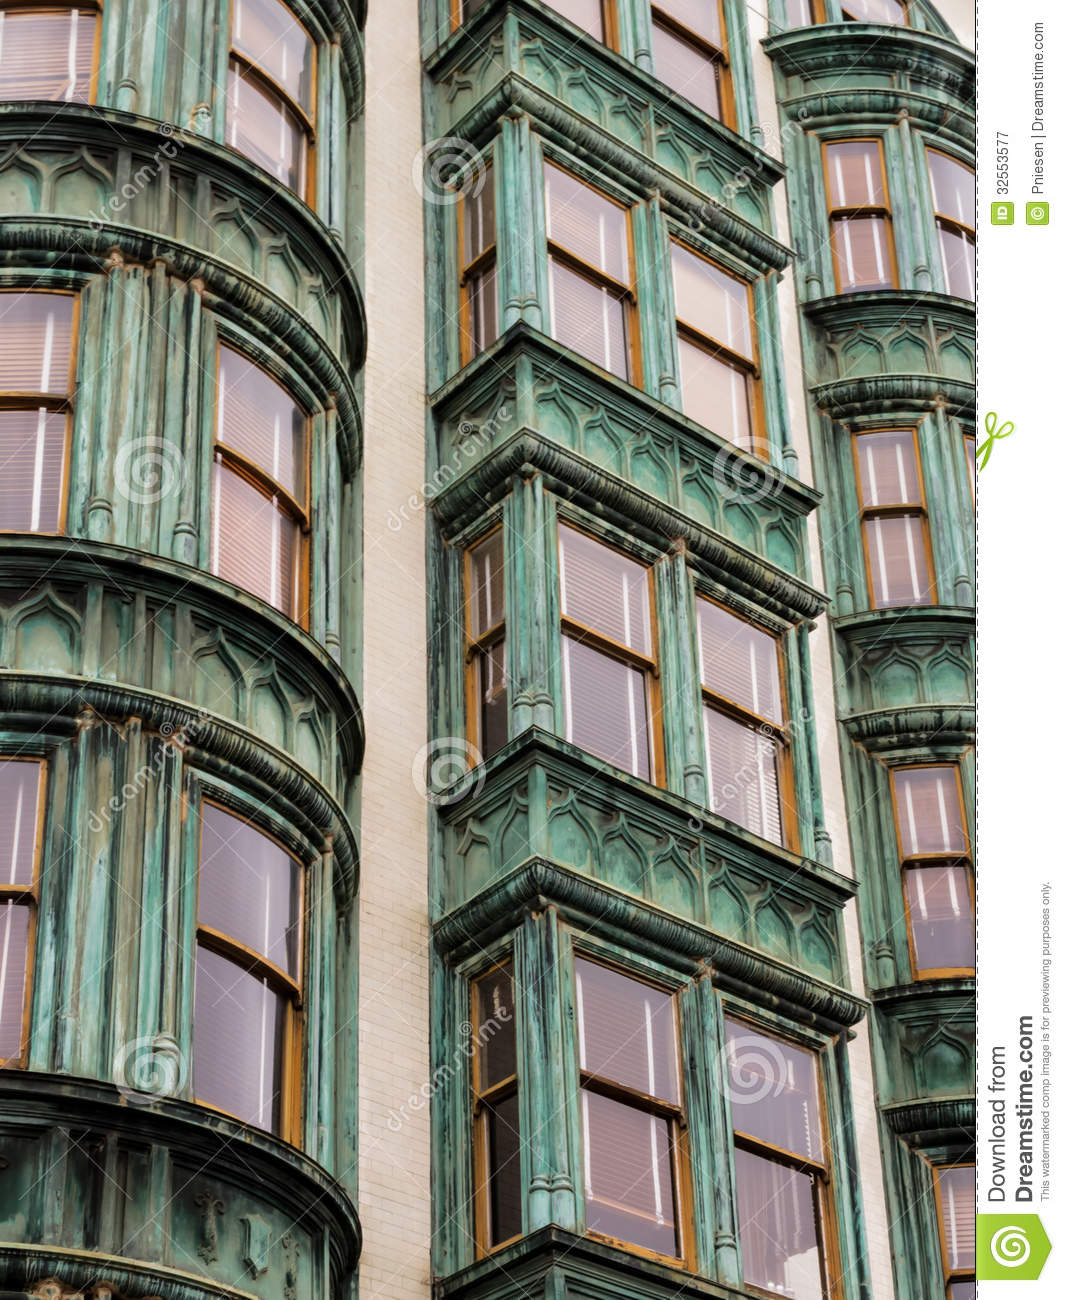 Cheap San Francisco Apartments For Rent: Pattern Vertical Rows Of Windows In San Francisco